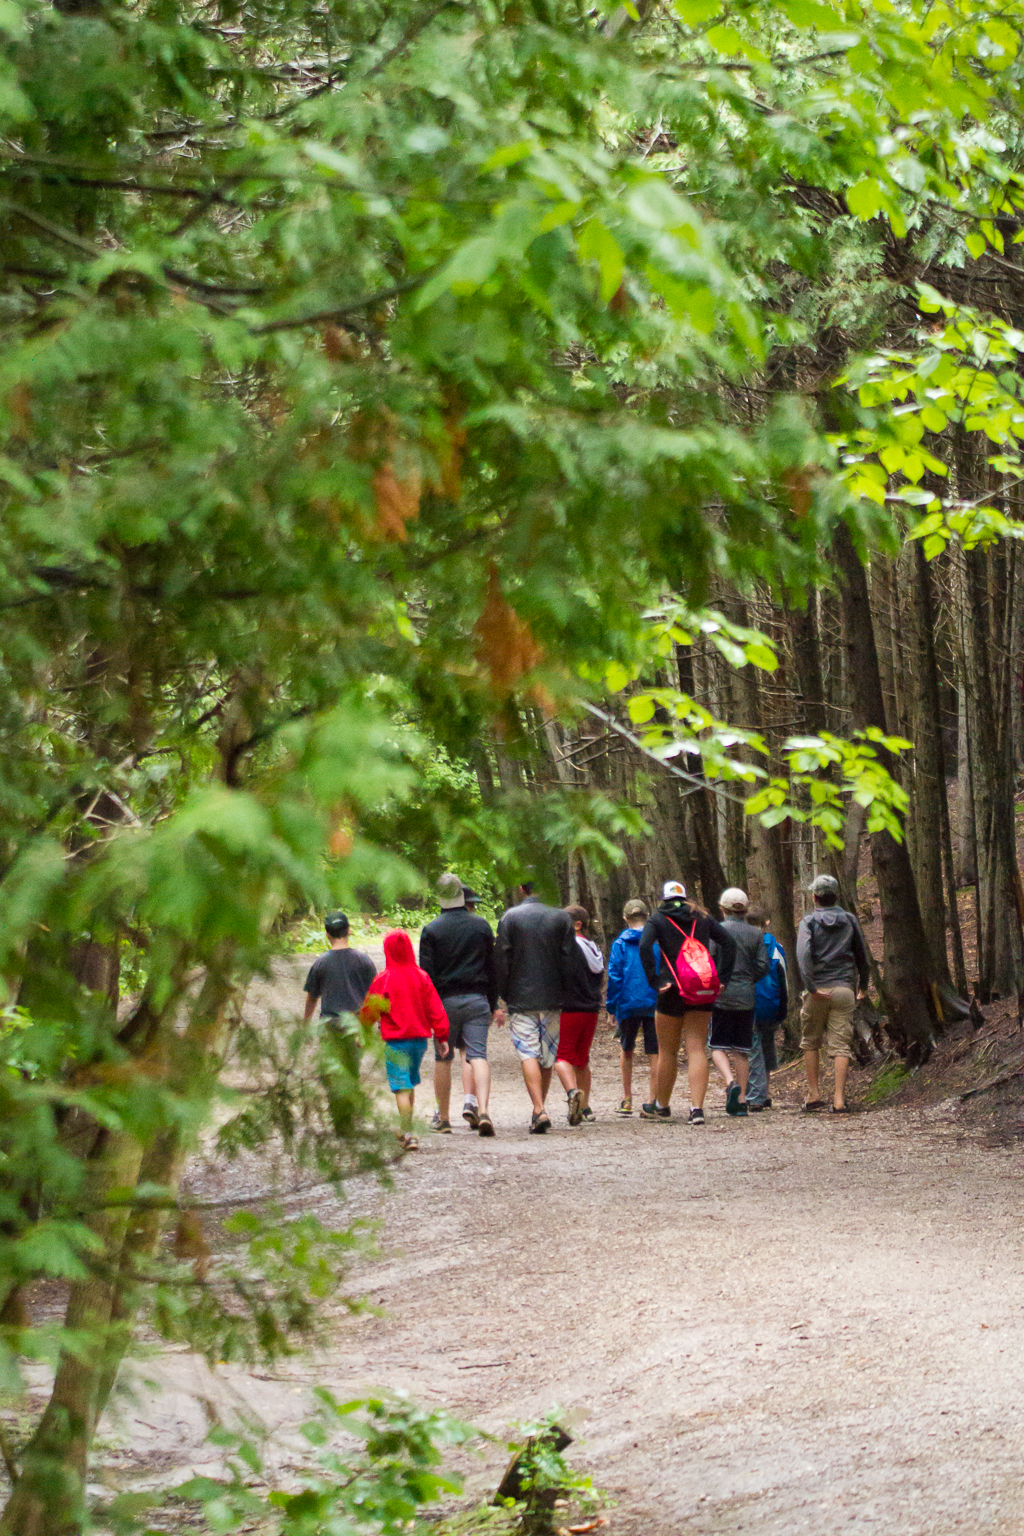 Summer campers at Camp Kintail walking on a path